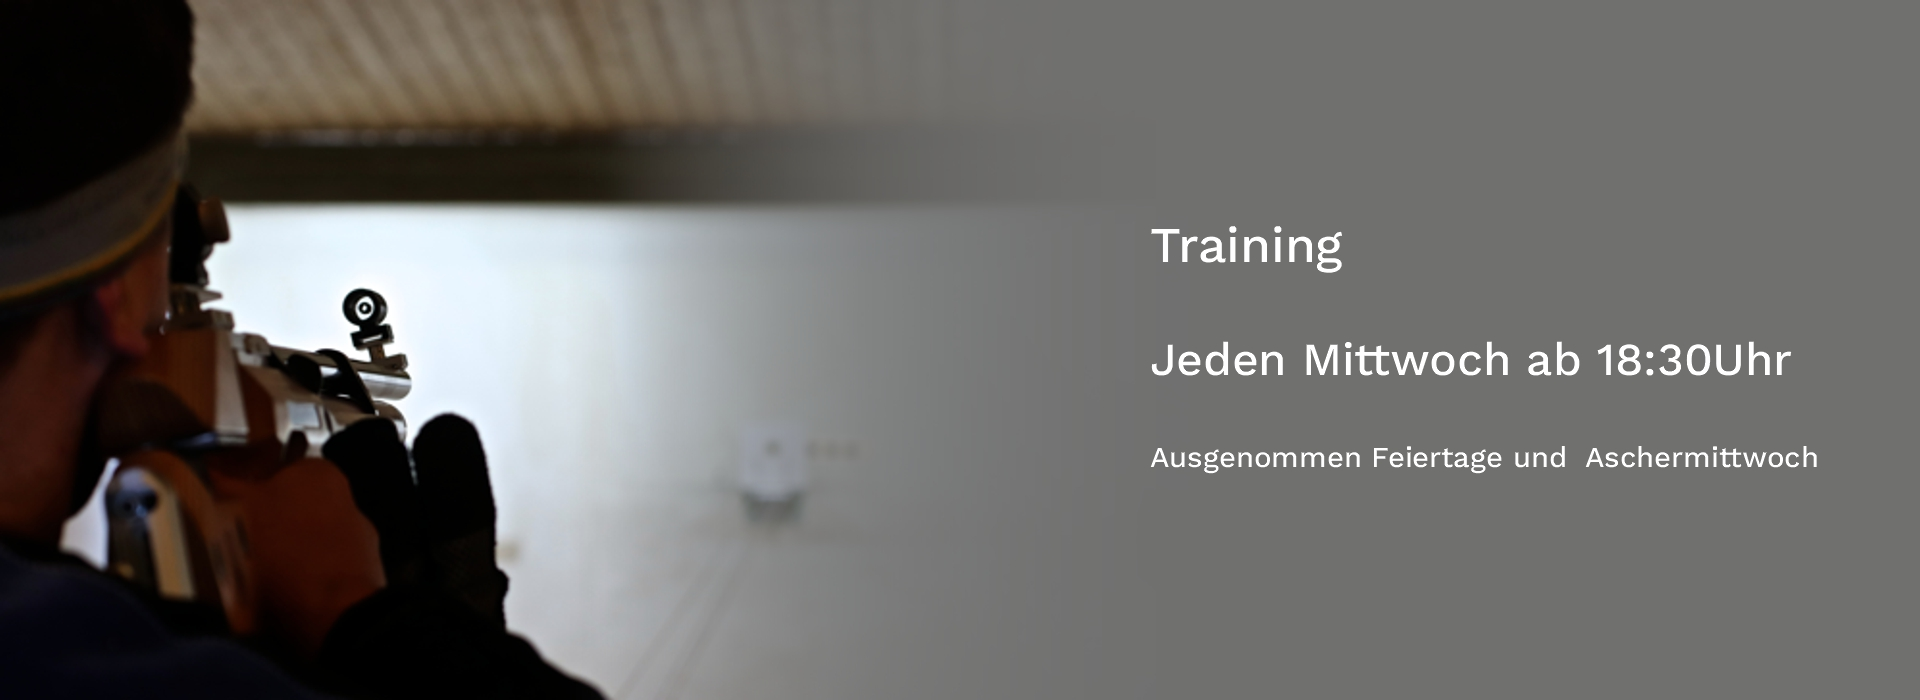 Header_Training